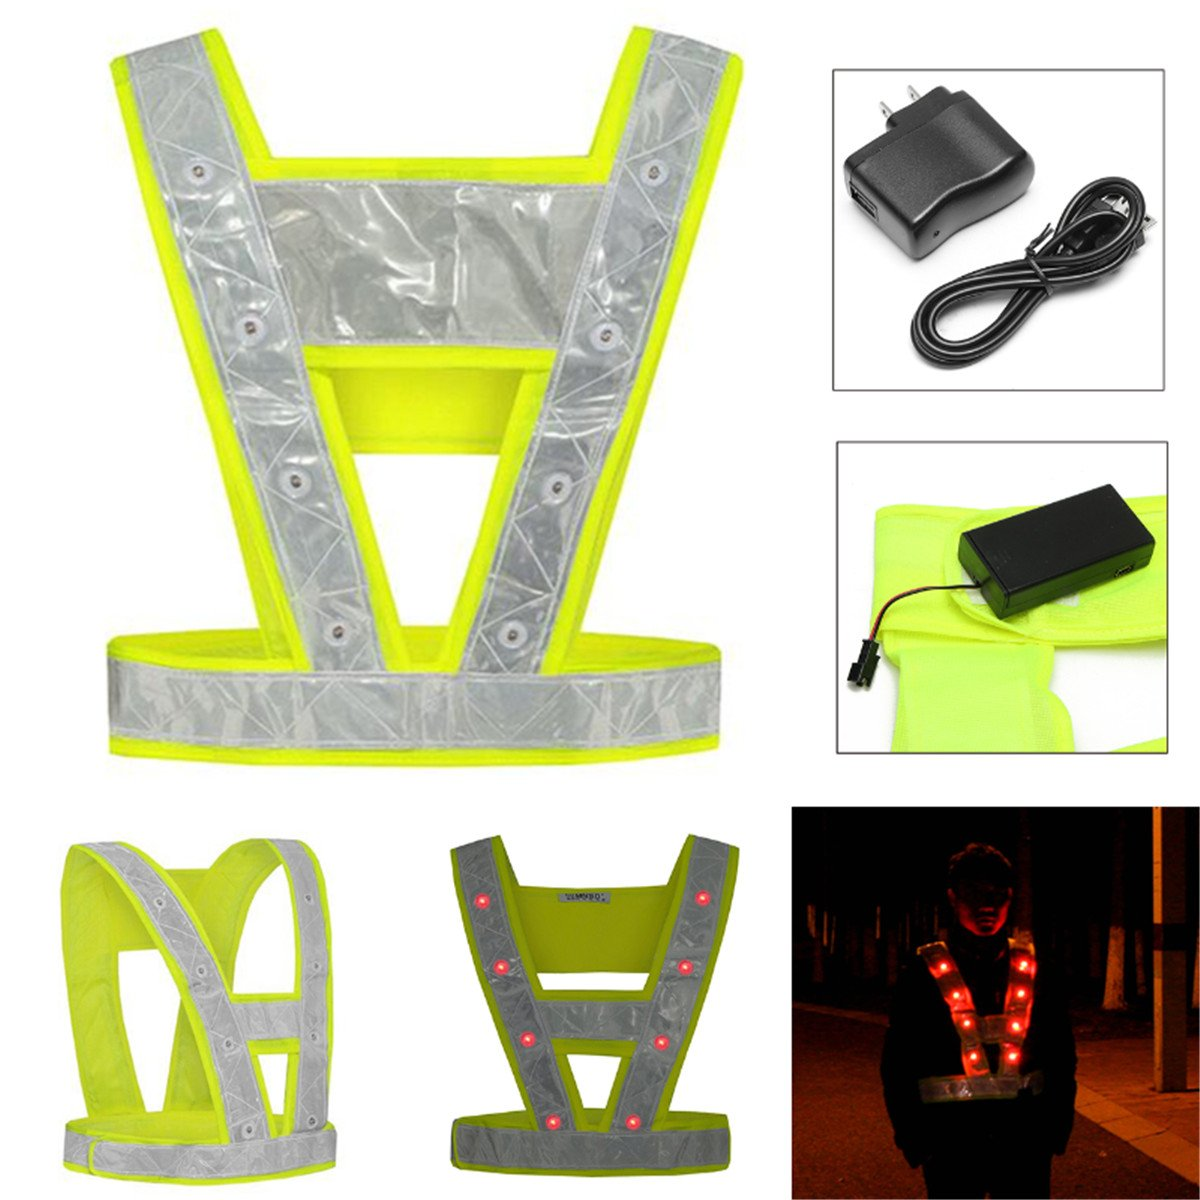 Cycling Running 16 LED Light Up Reflective Stripes Safety